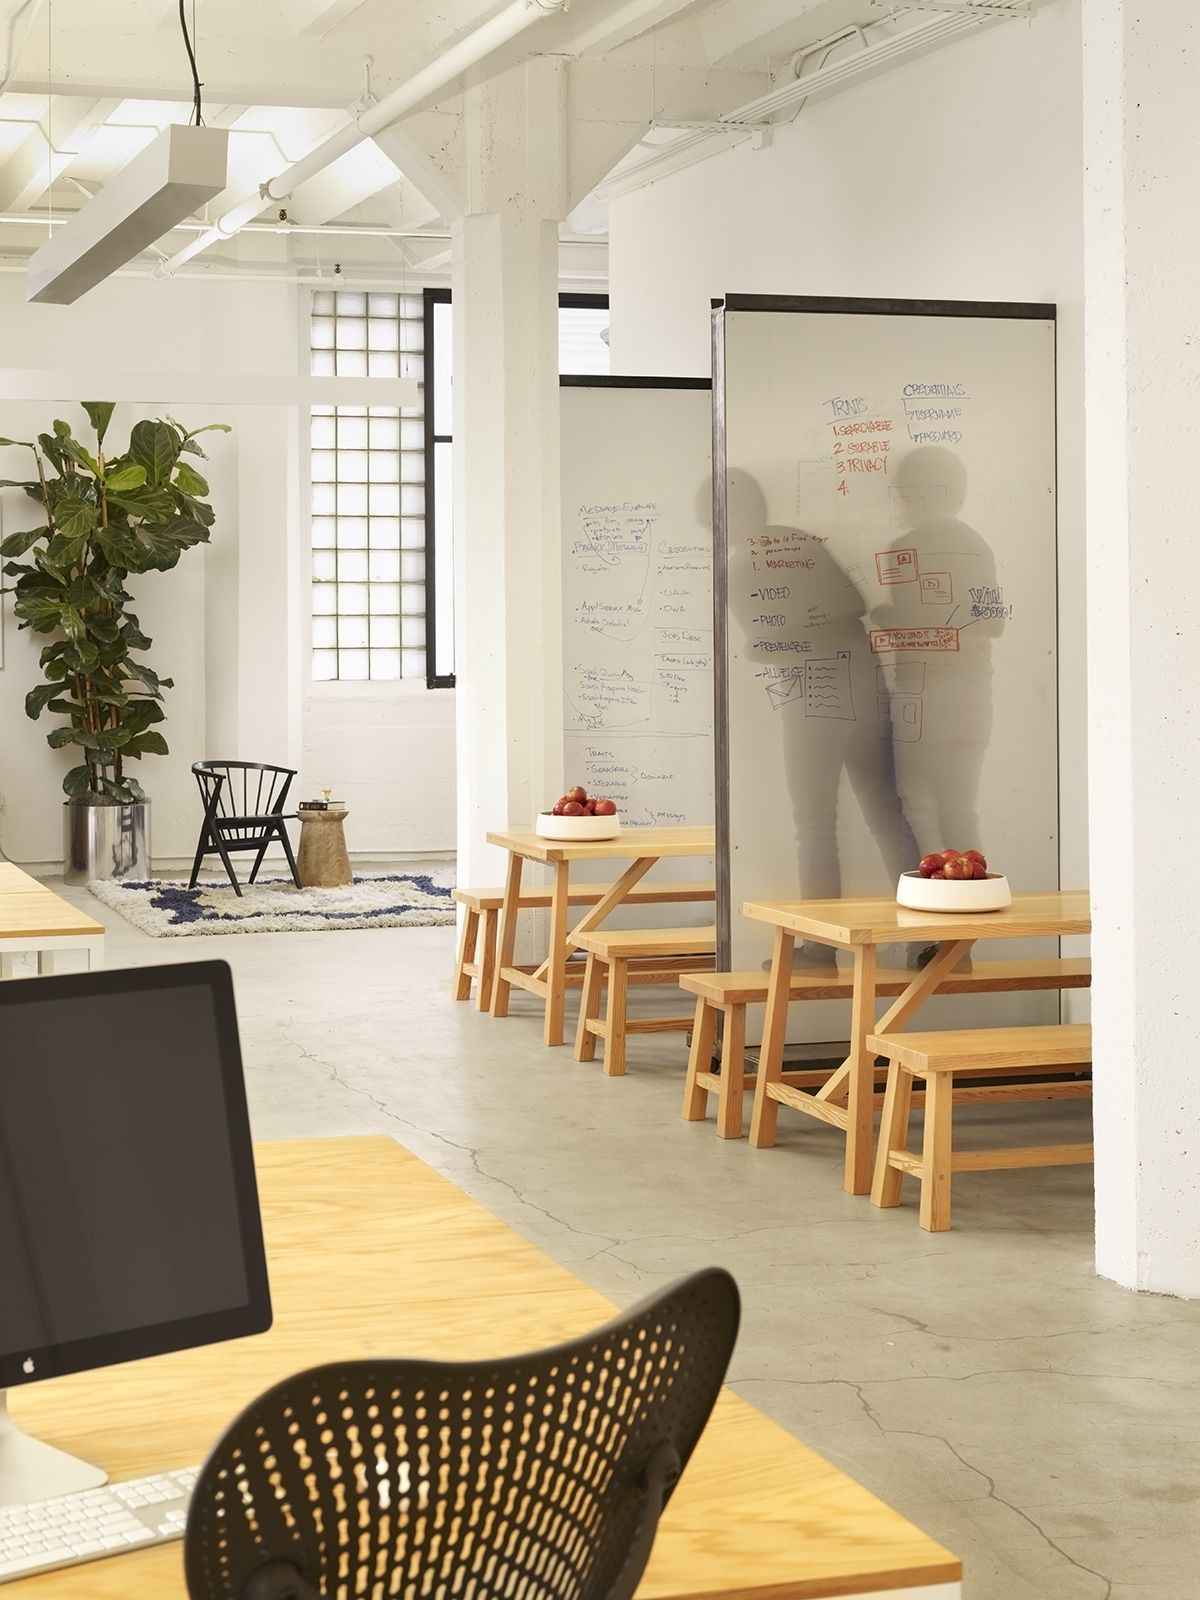 Attirant A Cool Looking Workspace In Hightailu0027s San Francisco Office | Design By  Geremia Design